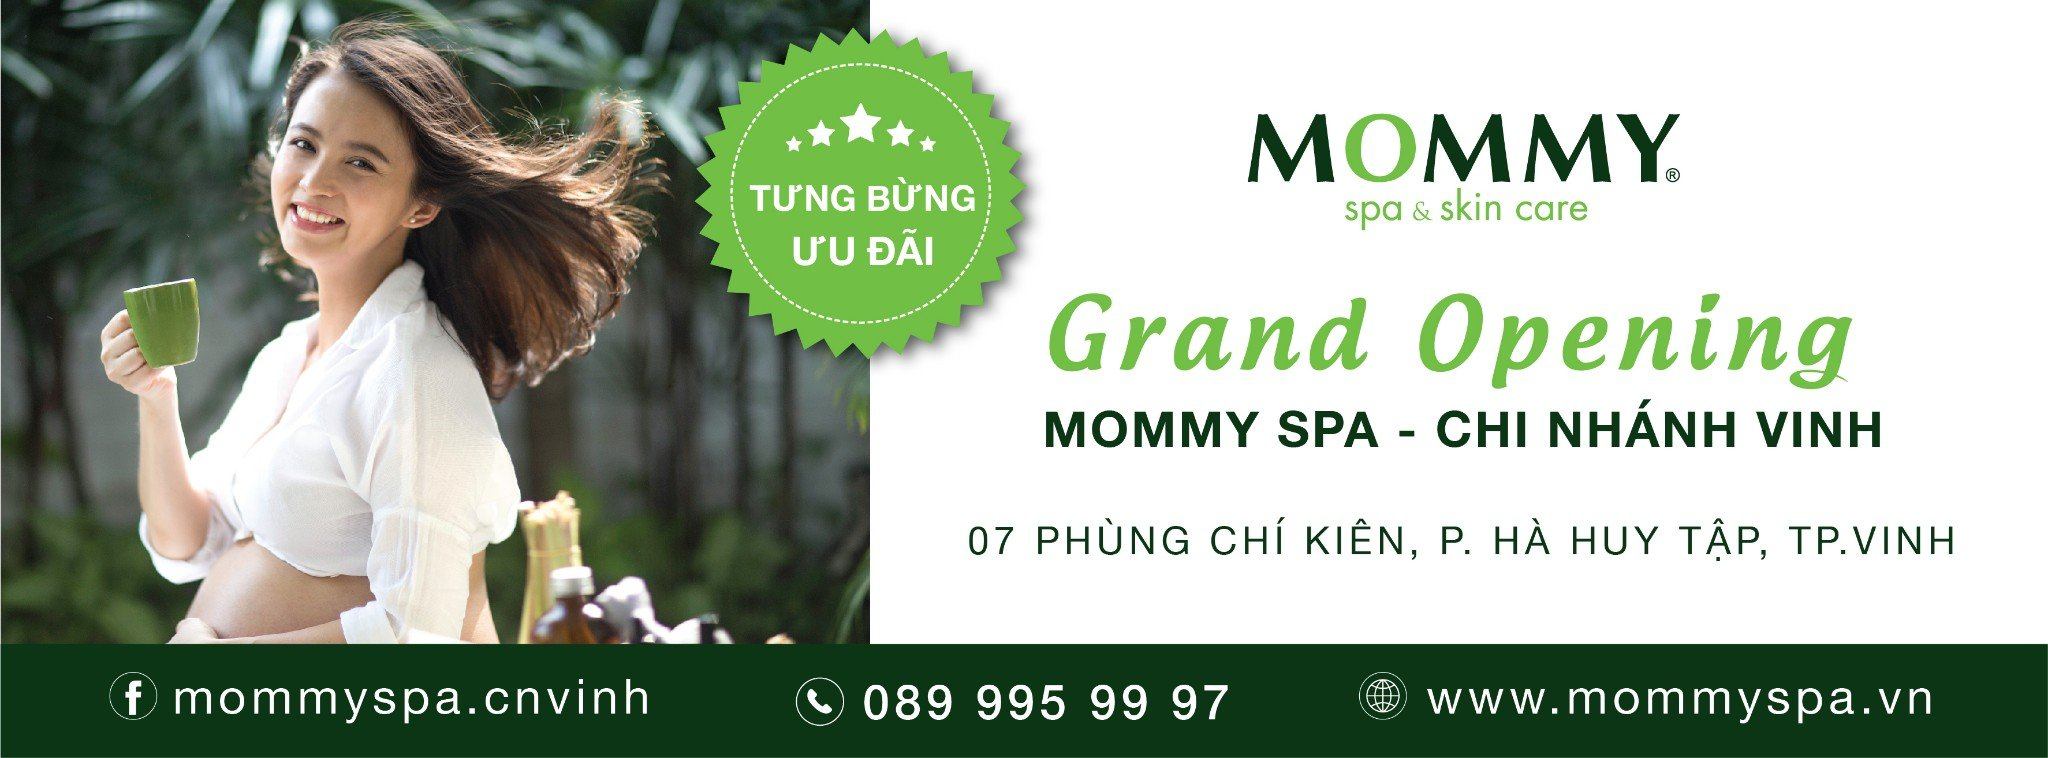 Mommy Spa & Skin Care slider 1